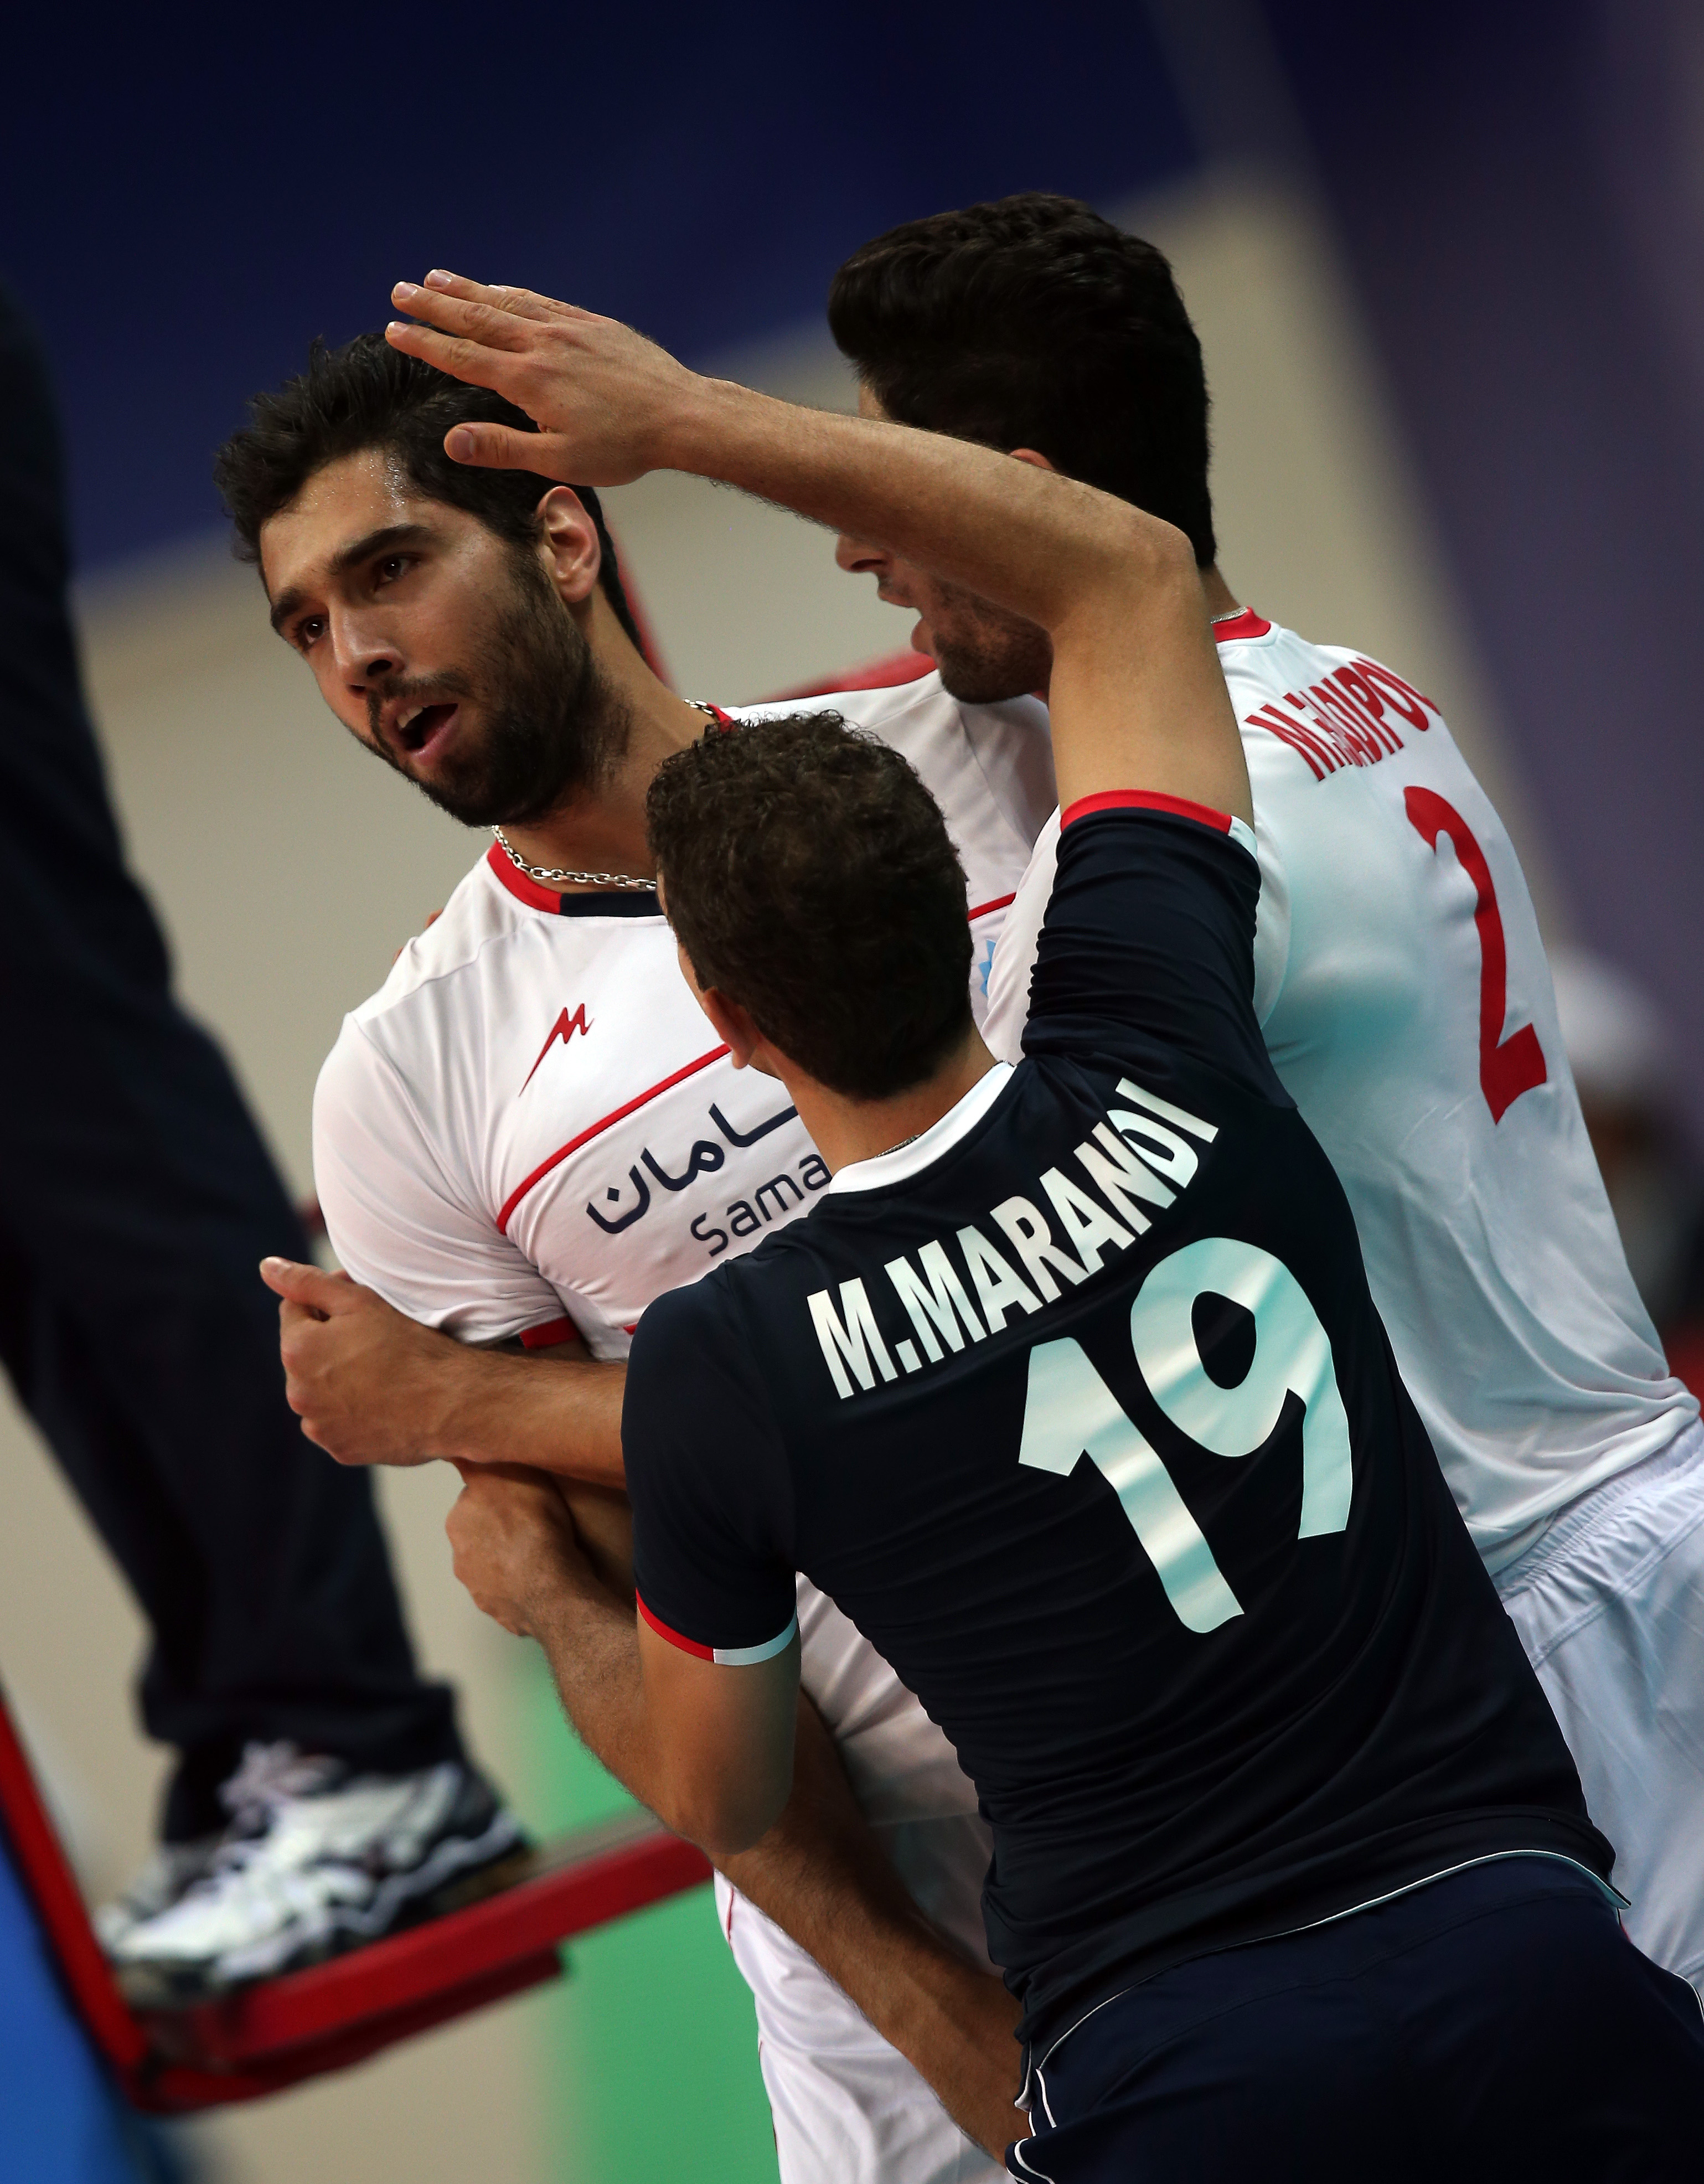 http://www.fivb.org/Vis2009/Images/GetImage.asmx?No=201480098&maxSize=960